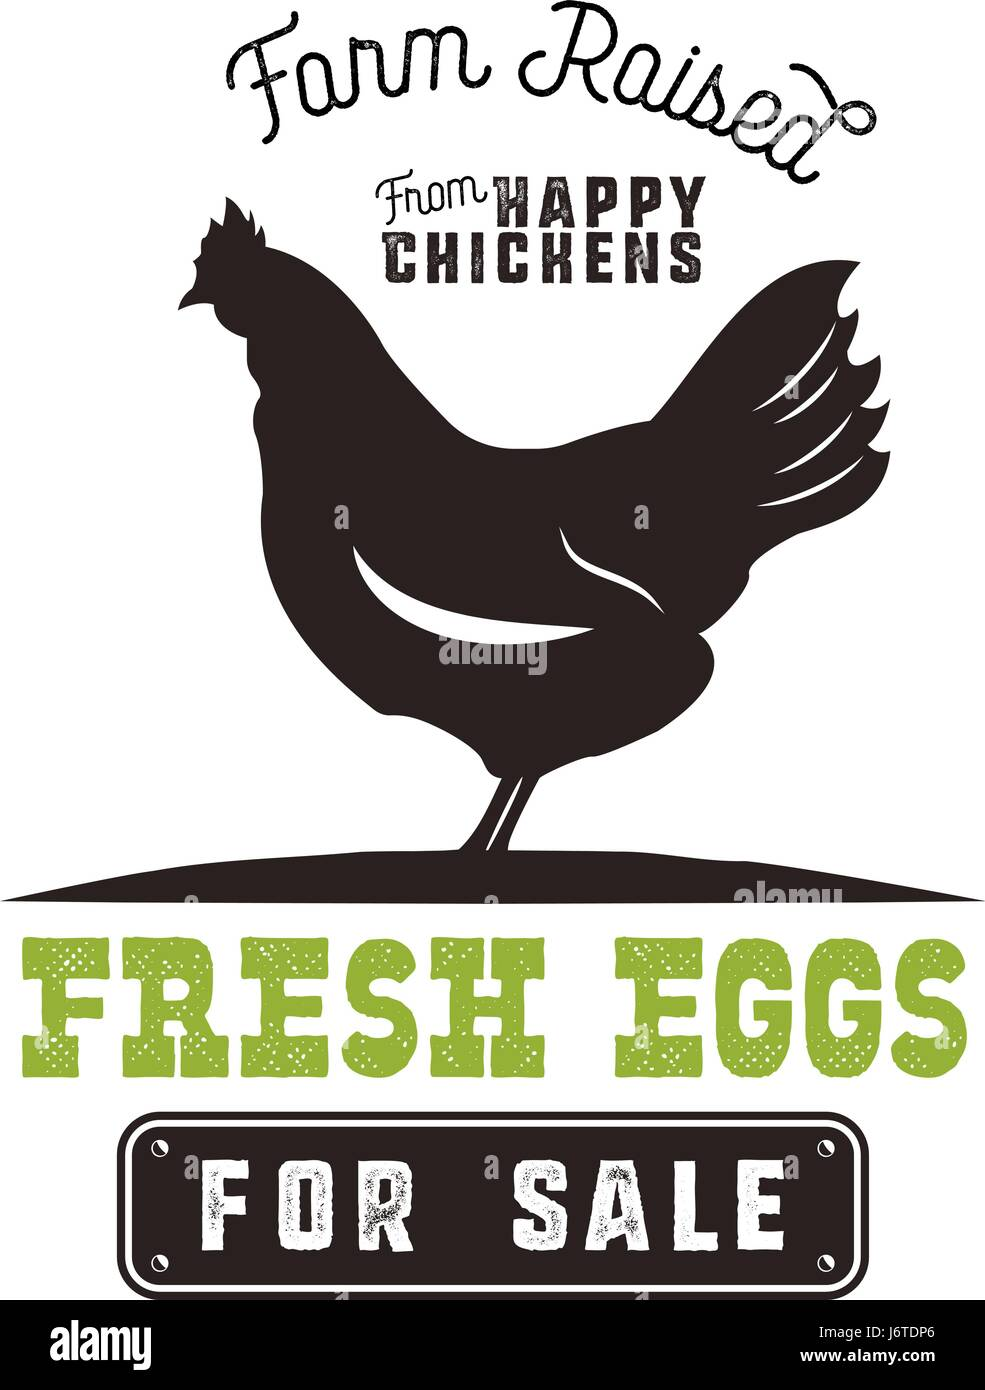 Farm Fresh Eggs Poster Vintage Rustic Emblem With Chicken Retro Typography Style Black And Green Vector Design Isolated On White Background